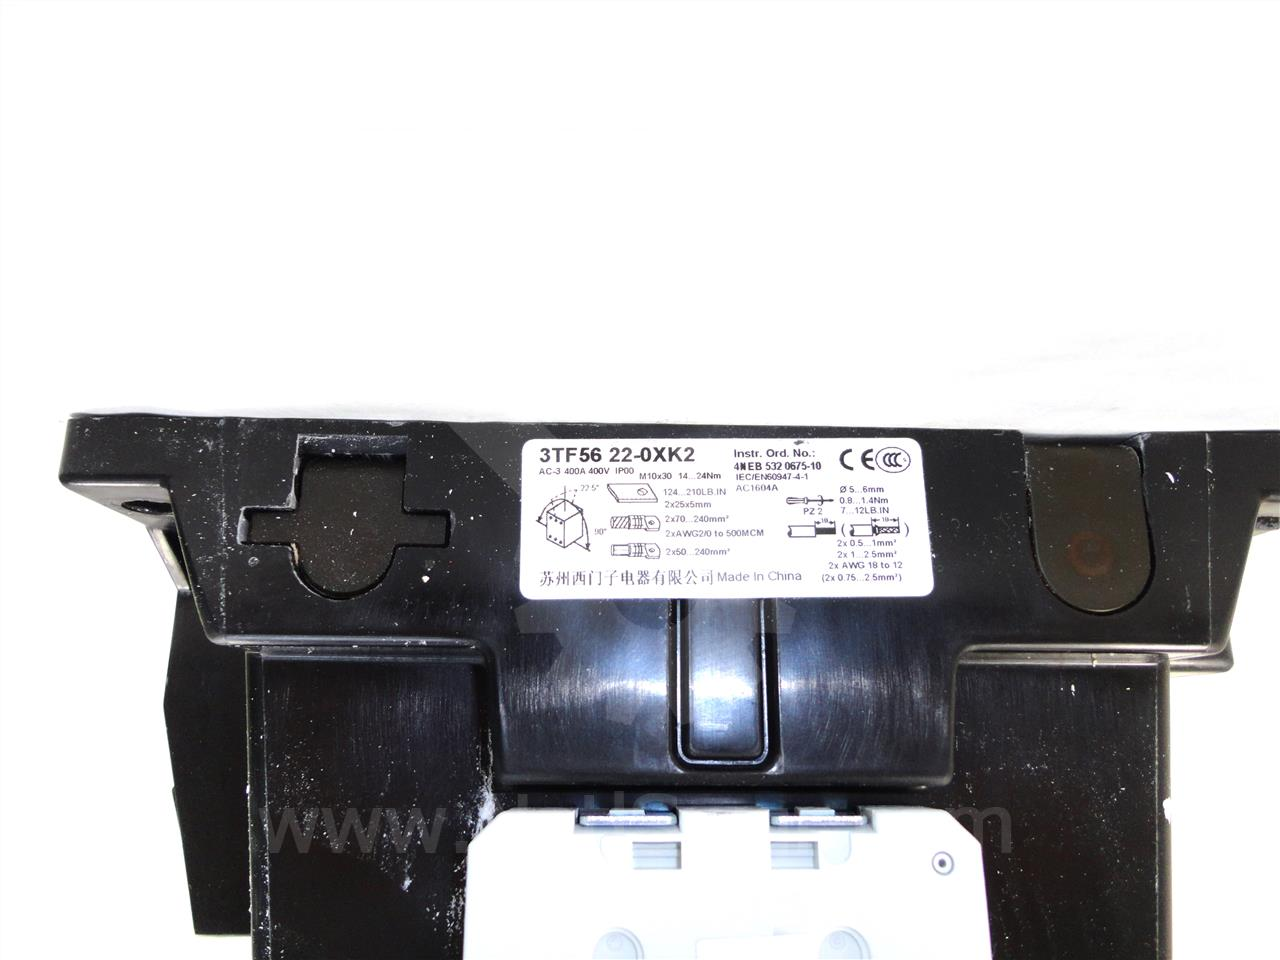 Siemens / Allis Chalmers 400A SA AIR MAGNETIC CONTACTOR SIZE 3